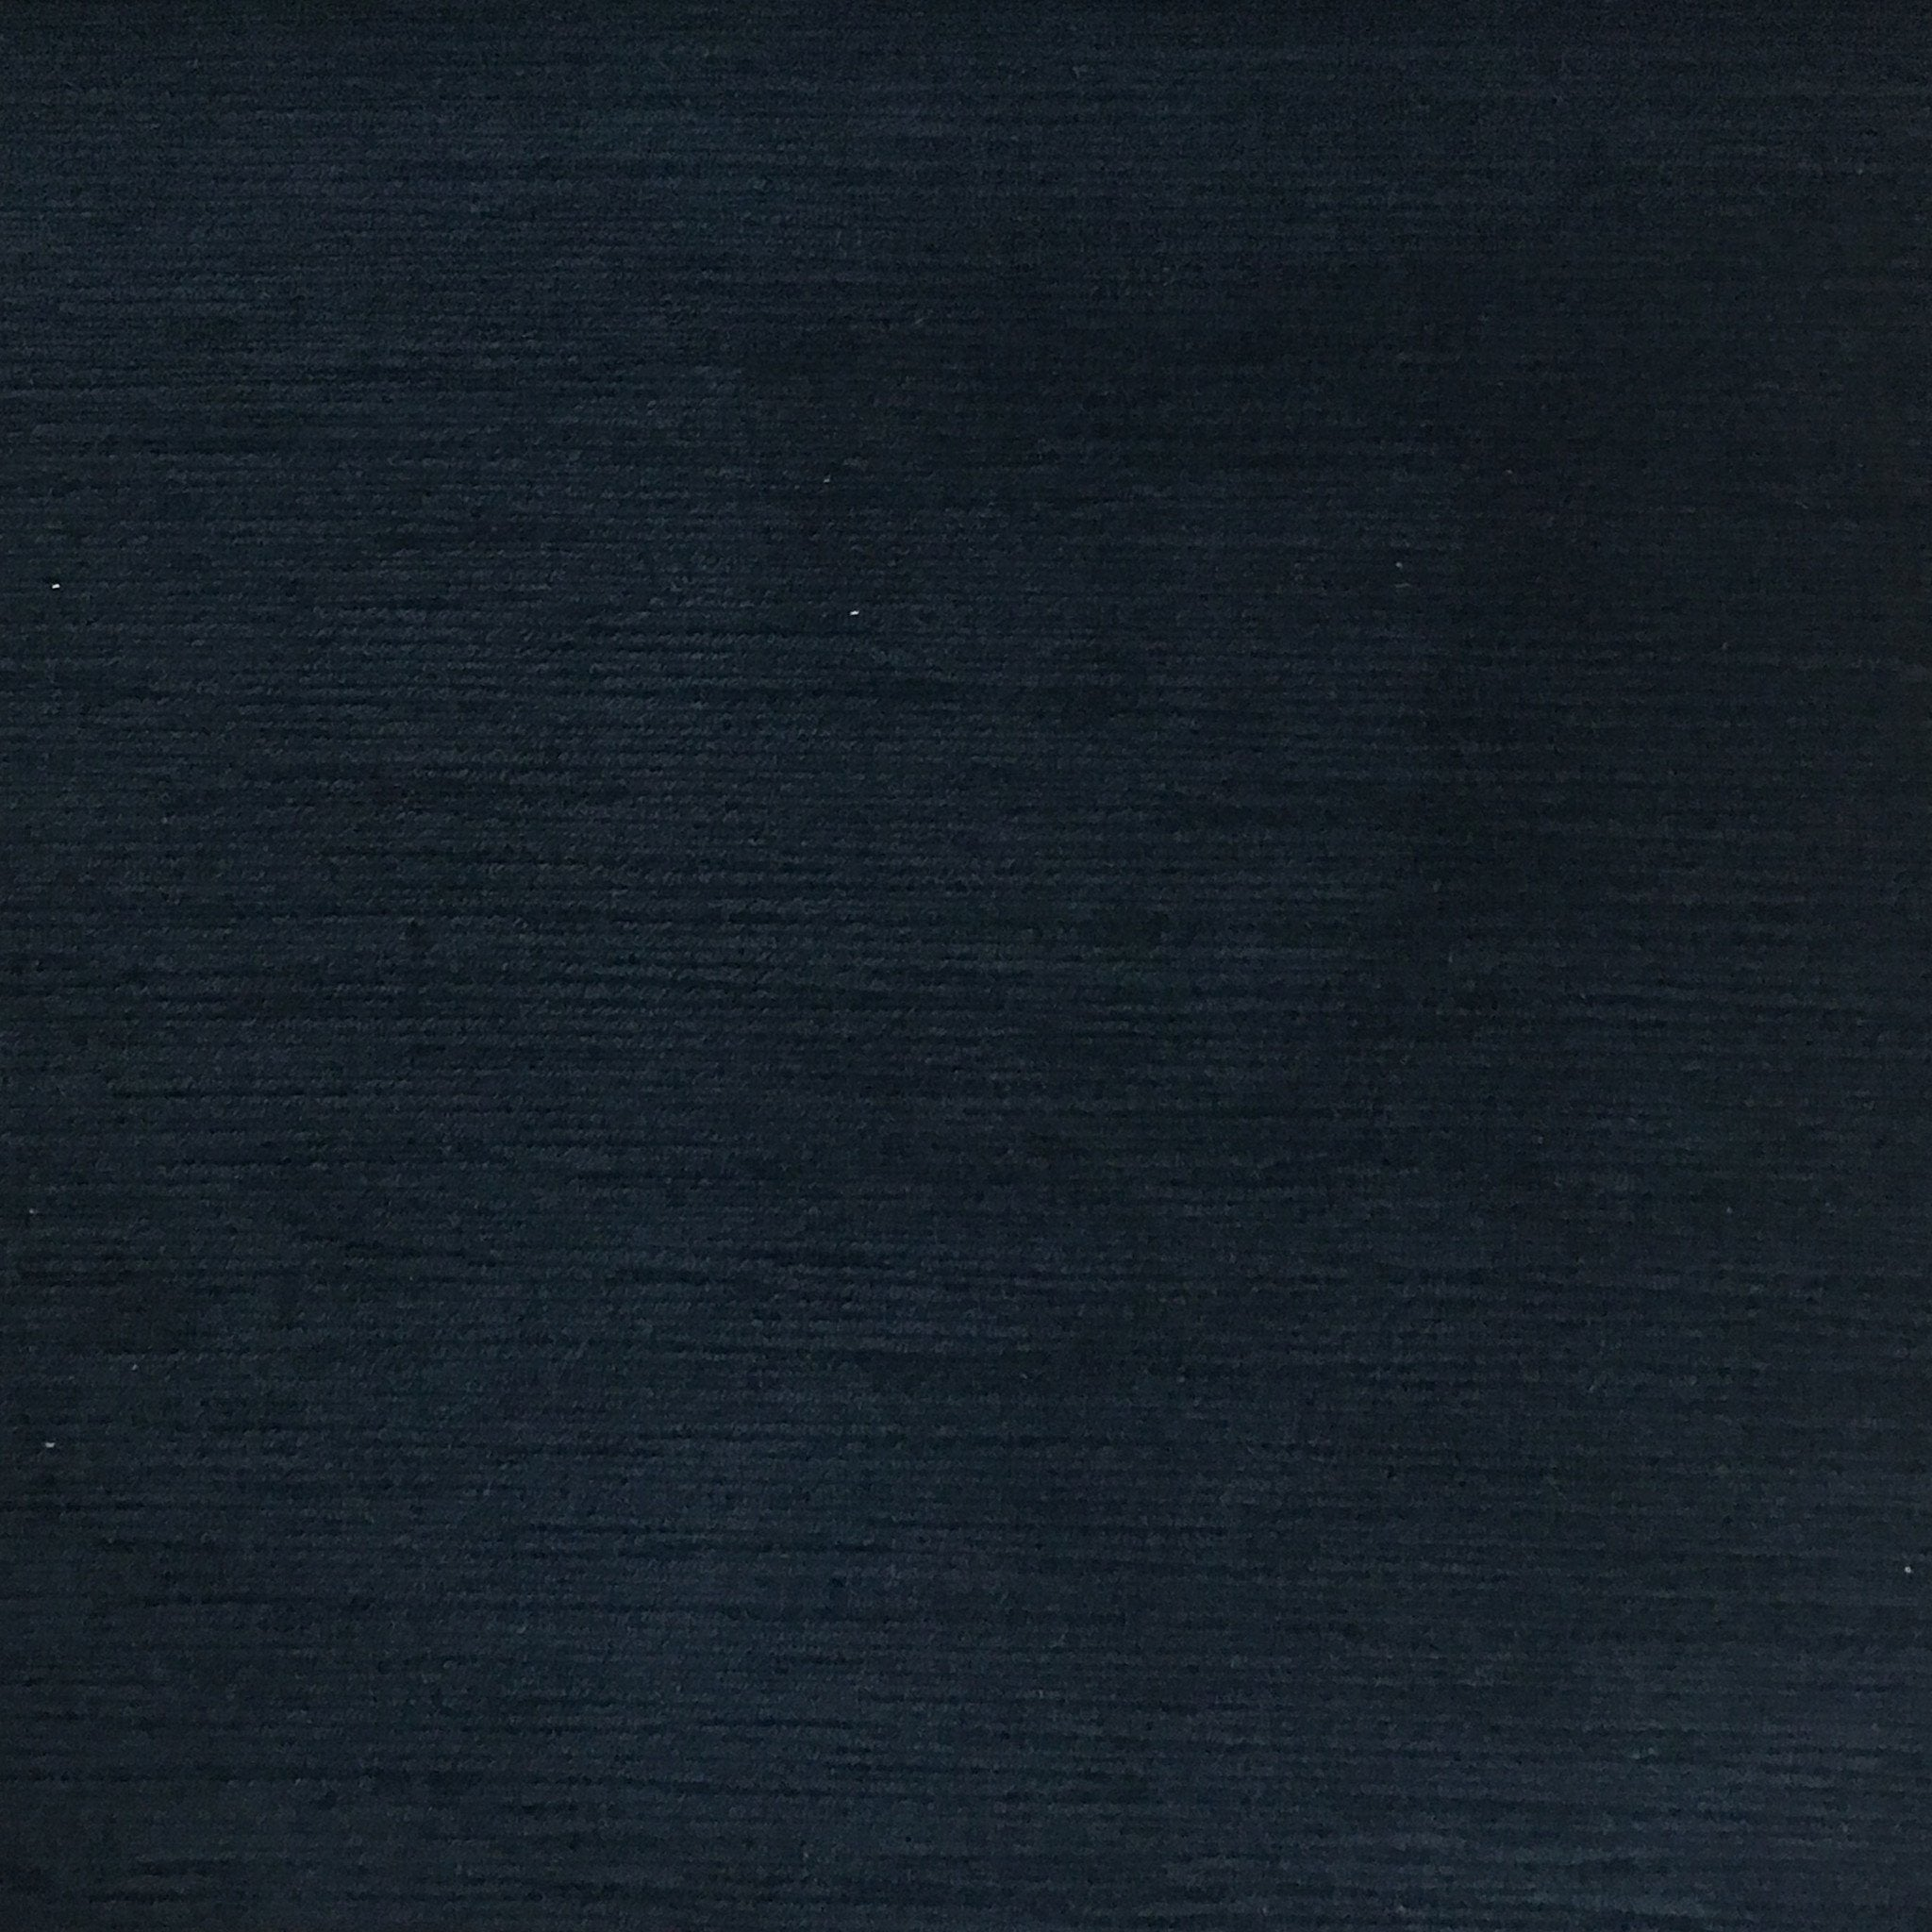 pond strie textured microfiber slubbed velvet fabric upholstery fabric by the yard available in